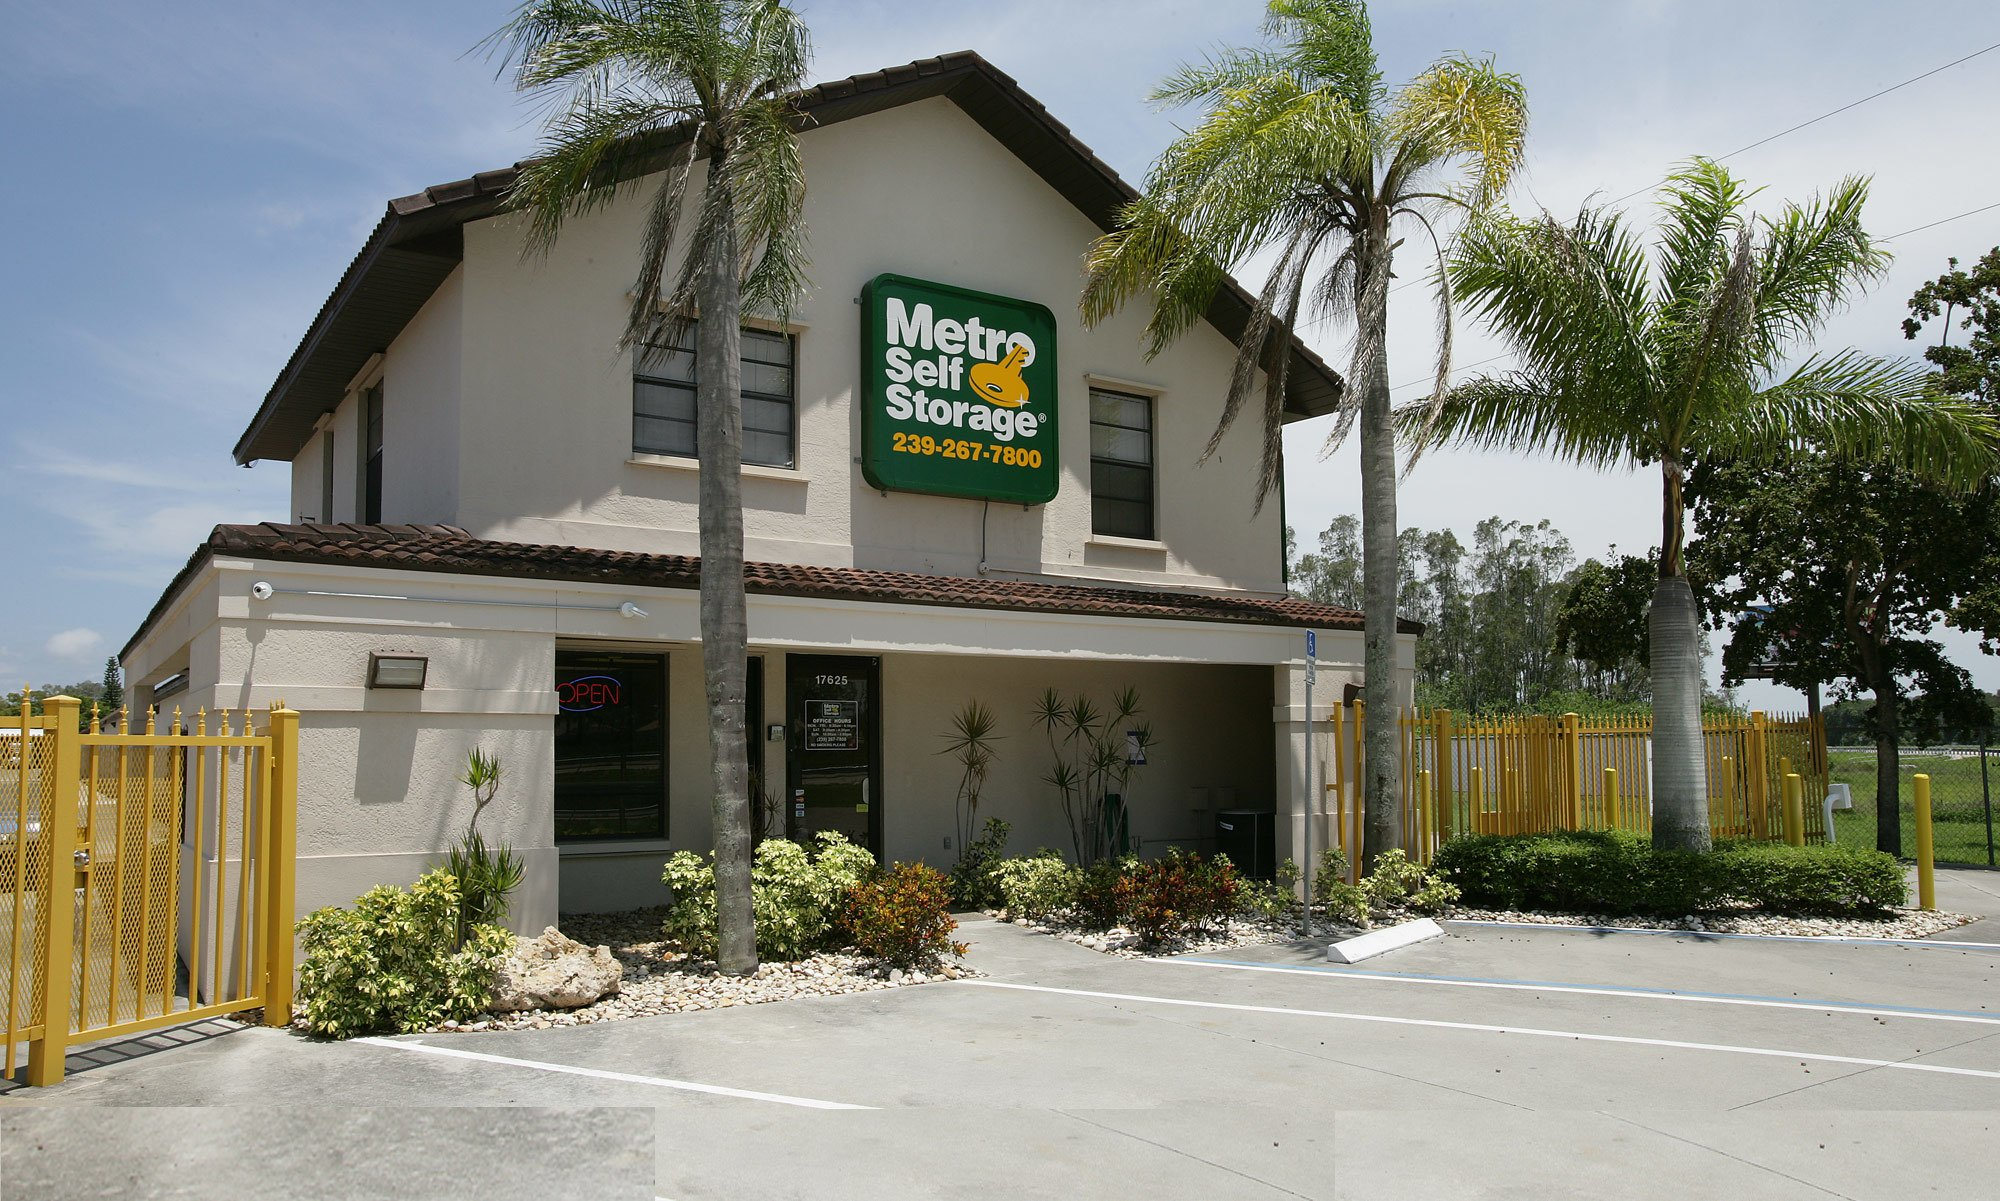 Metro Self Storage in Fort Myers, FL